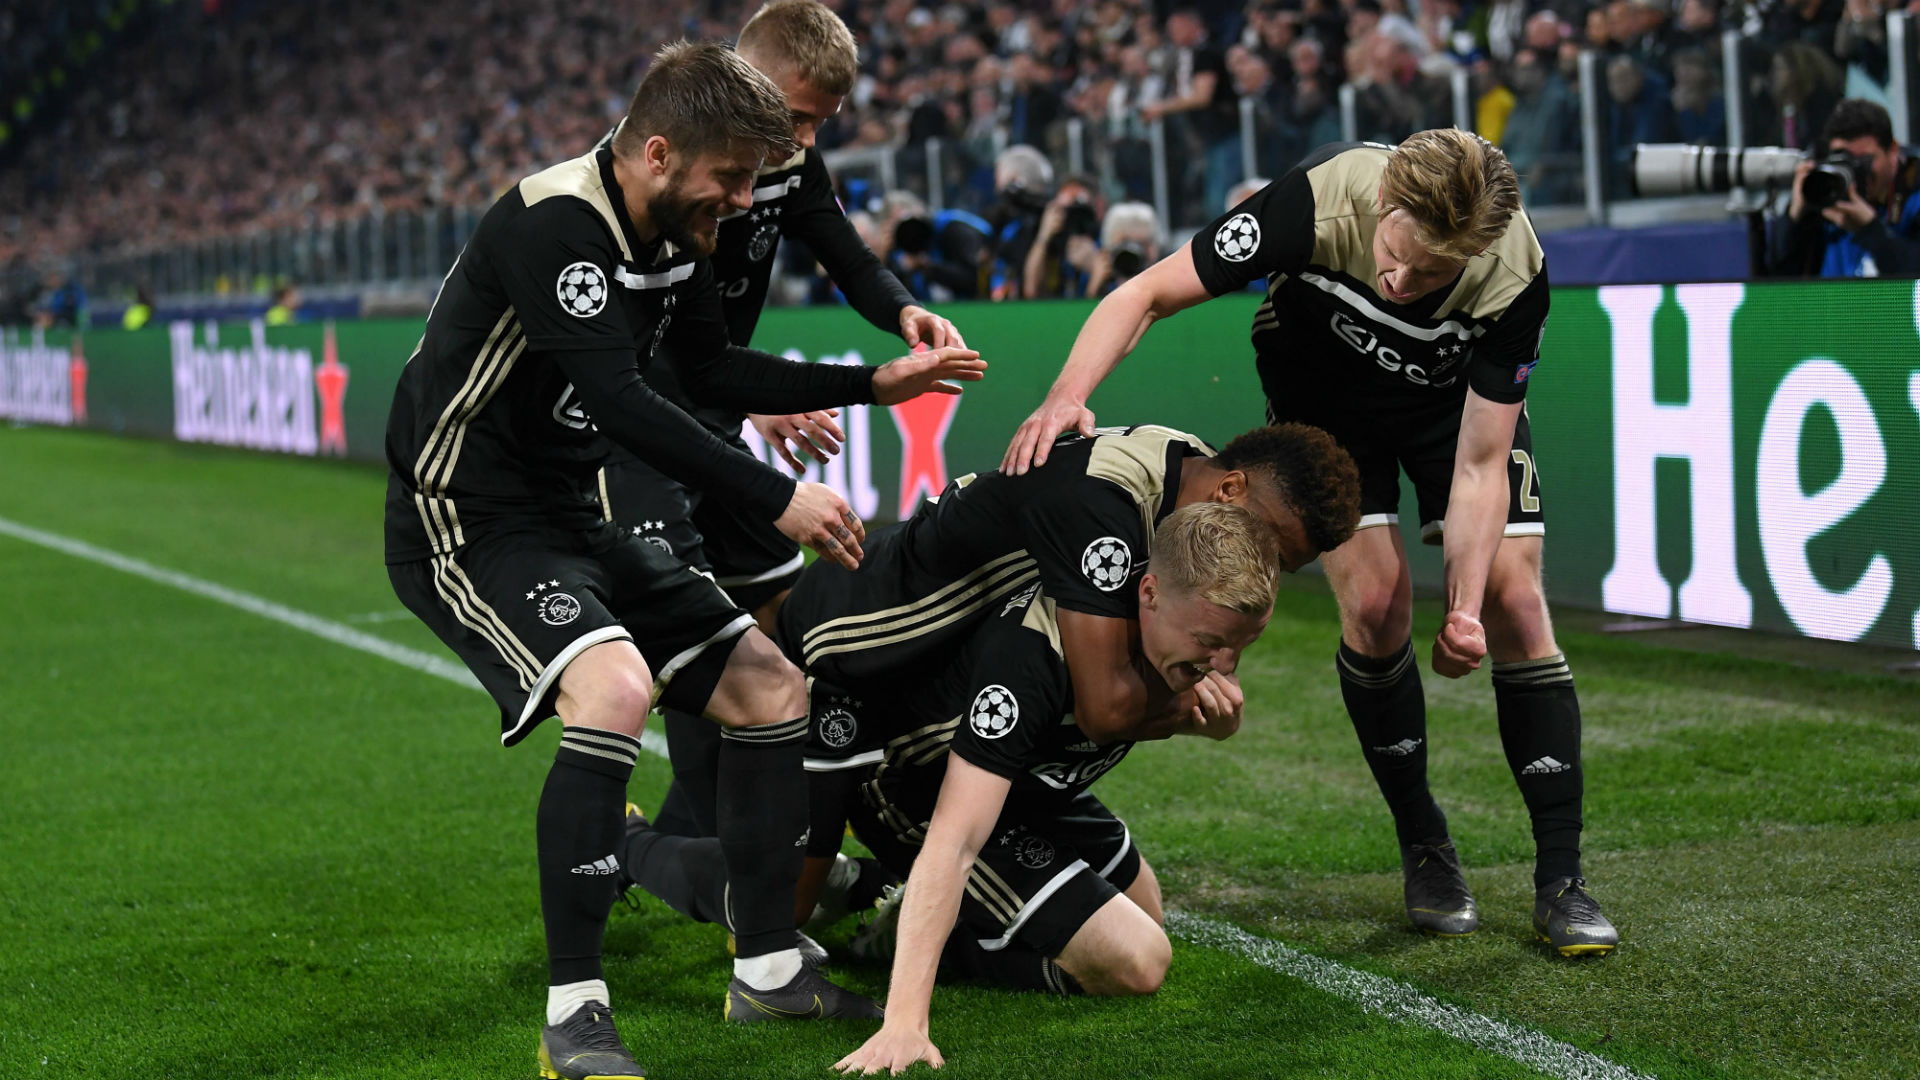 ajax celebrating win over juventus